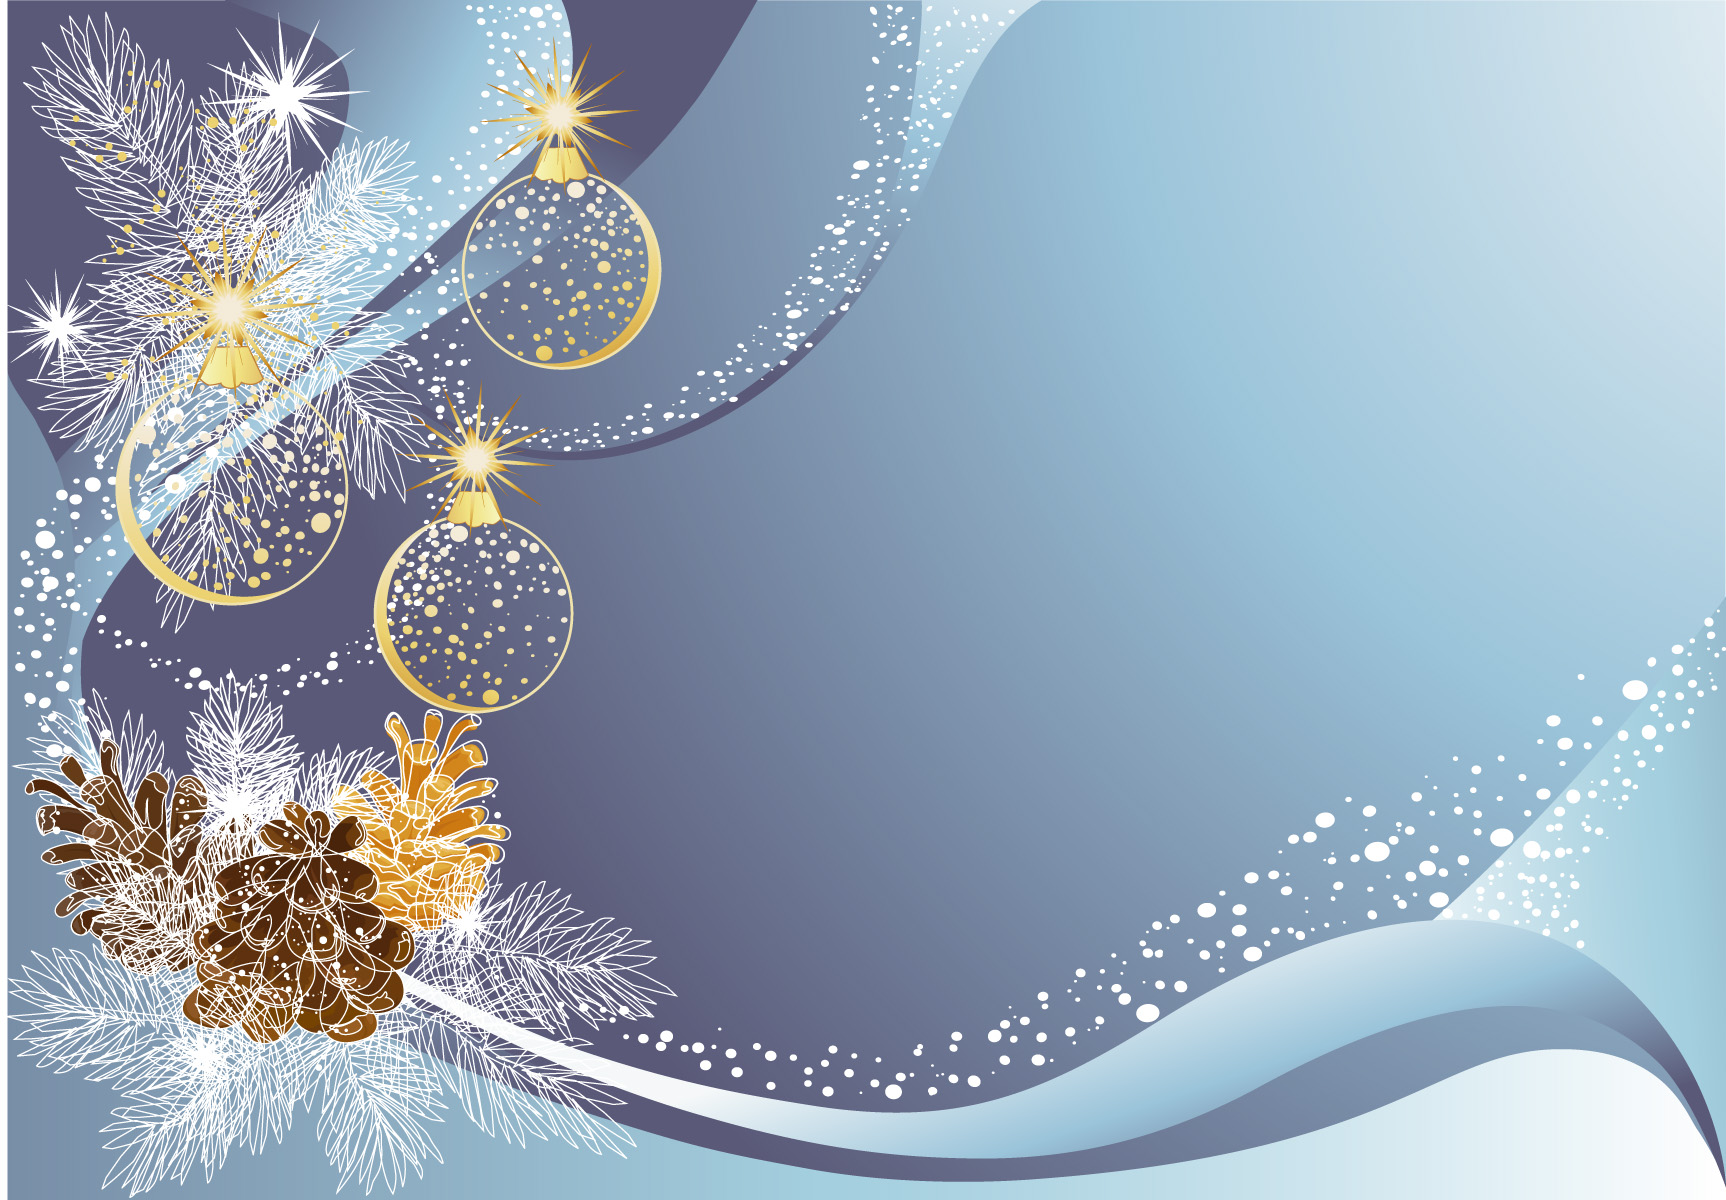 Holidays backgrounds wallpapersafari - Free christmas images for desktop wallpaper ...